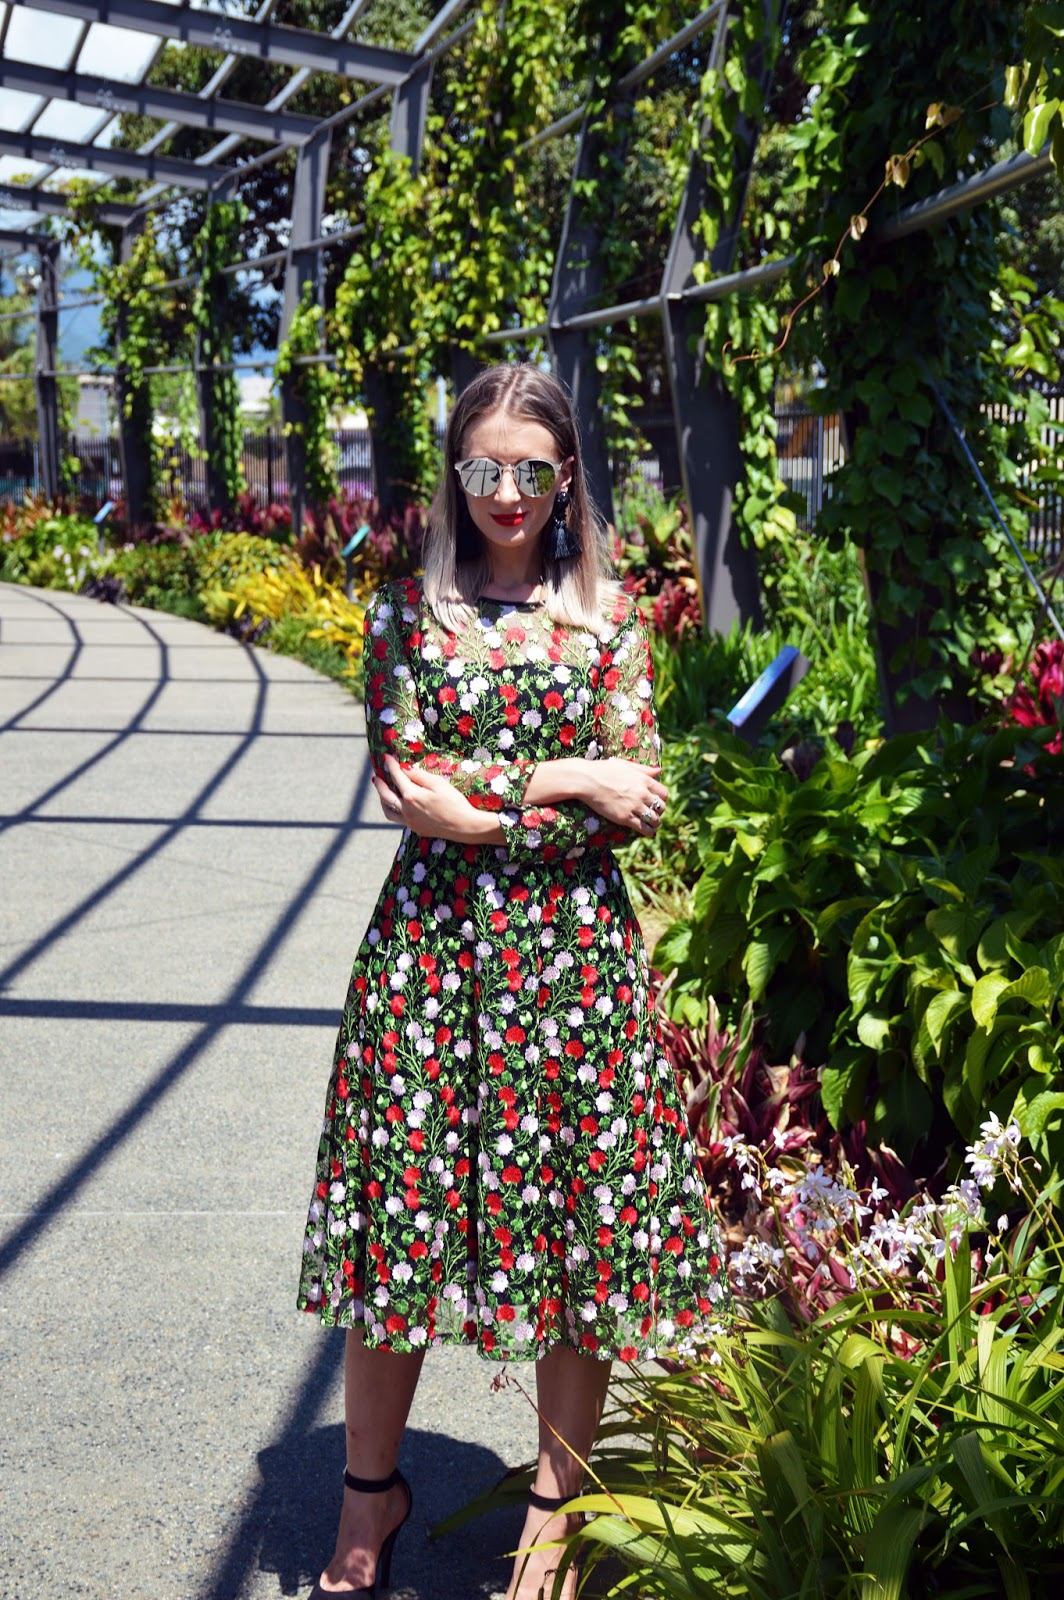 dolce and gabbana style black red floral dress 7f1e89ef8